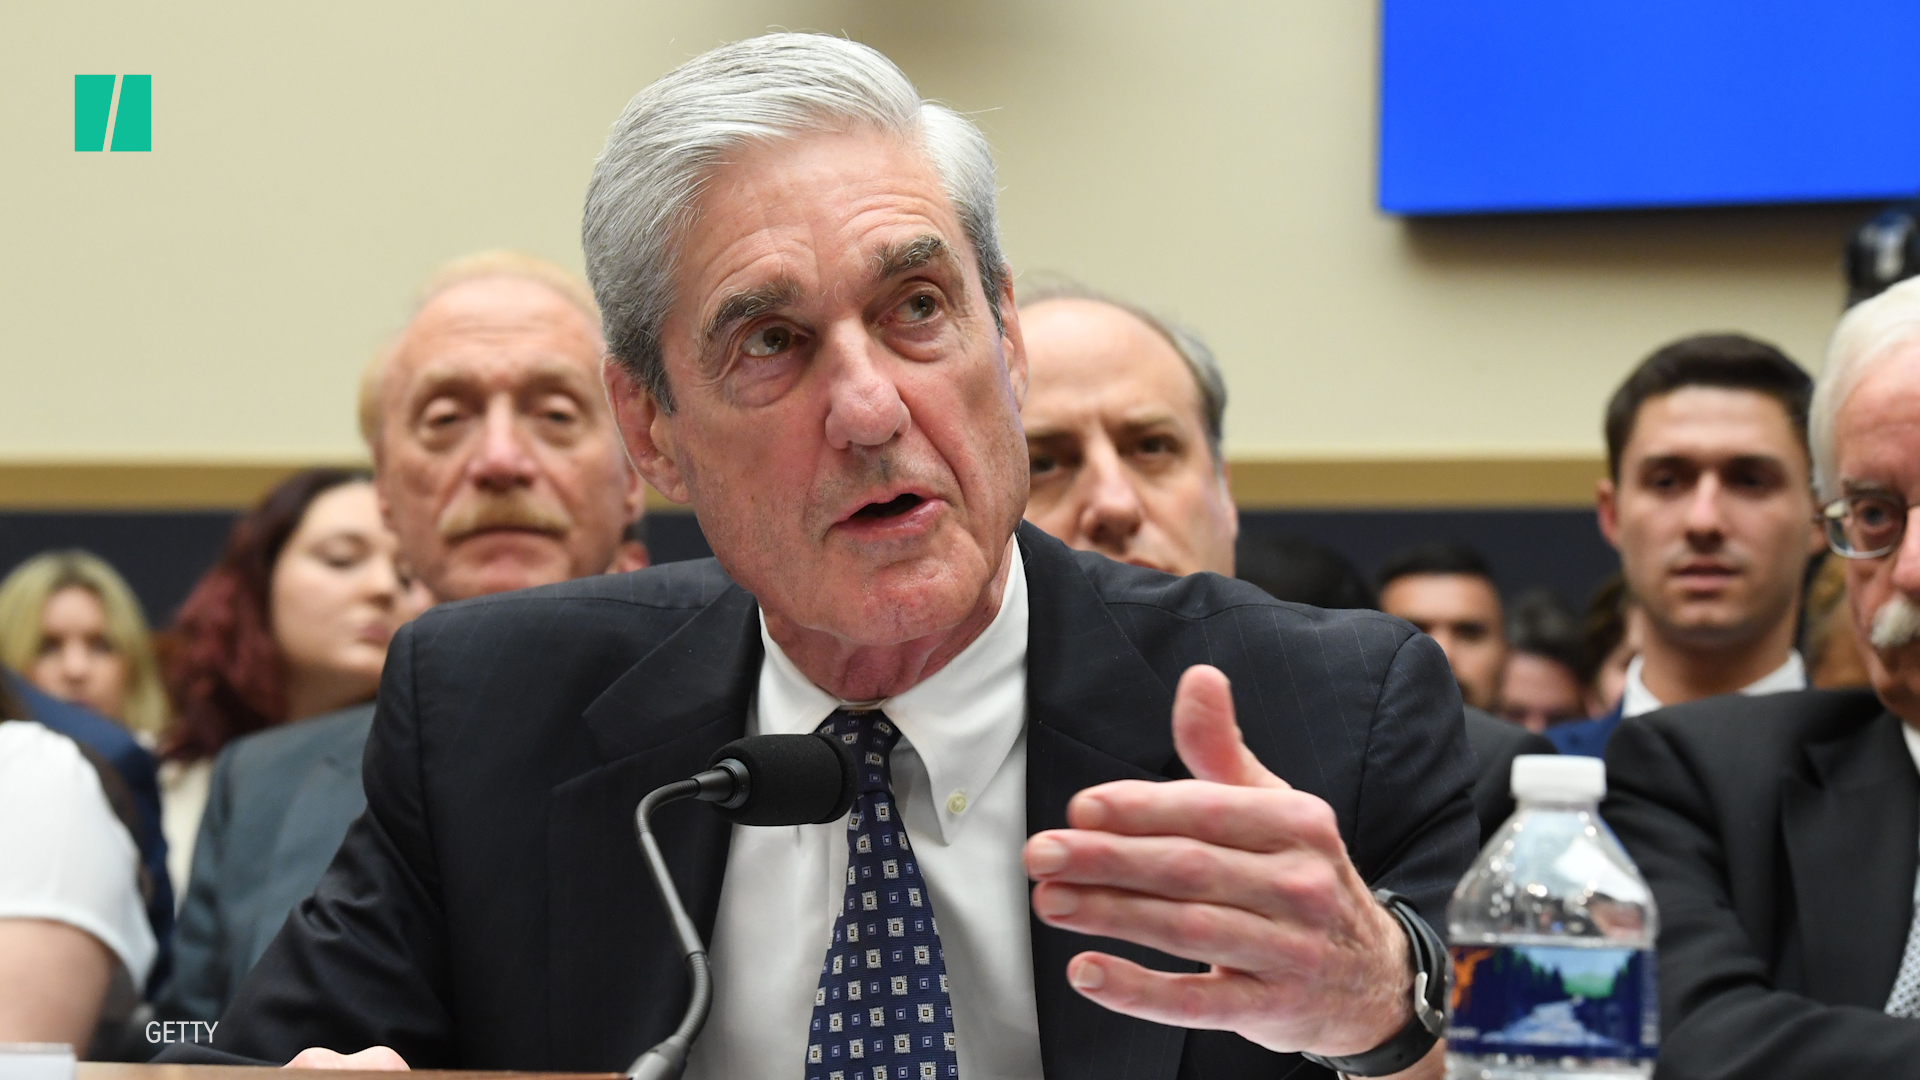 Robert Mueller Inadvertently Gives The World A Blistering New Catchphrase